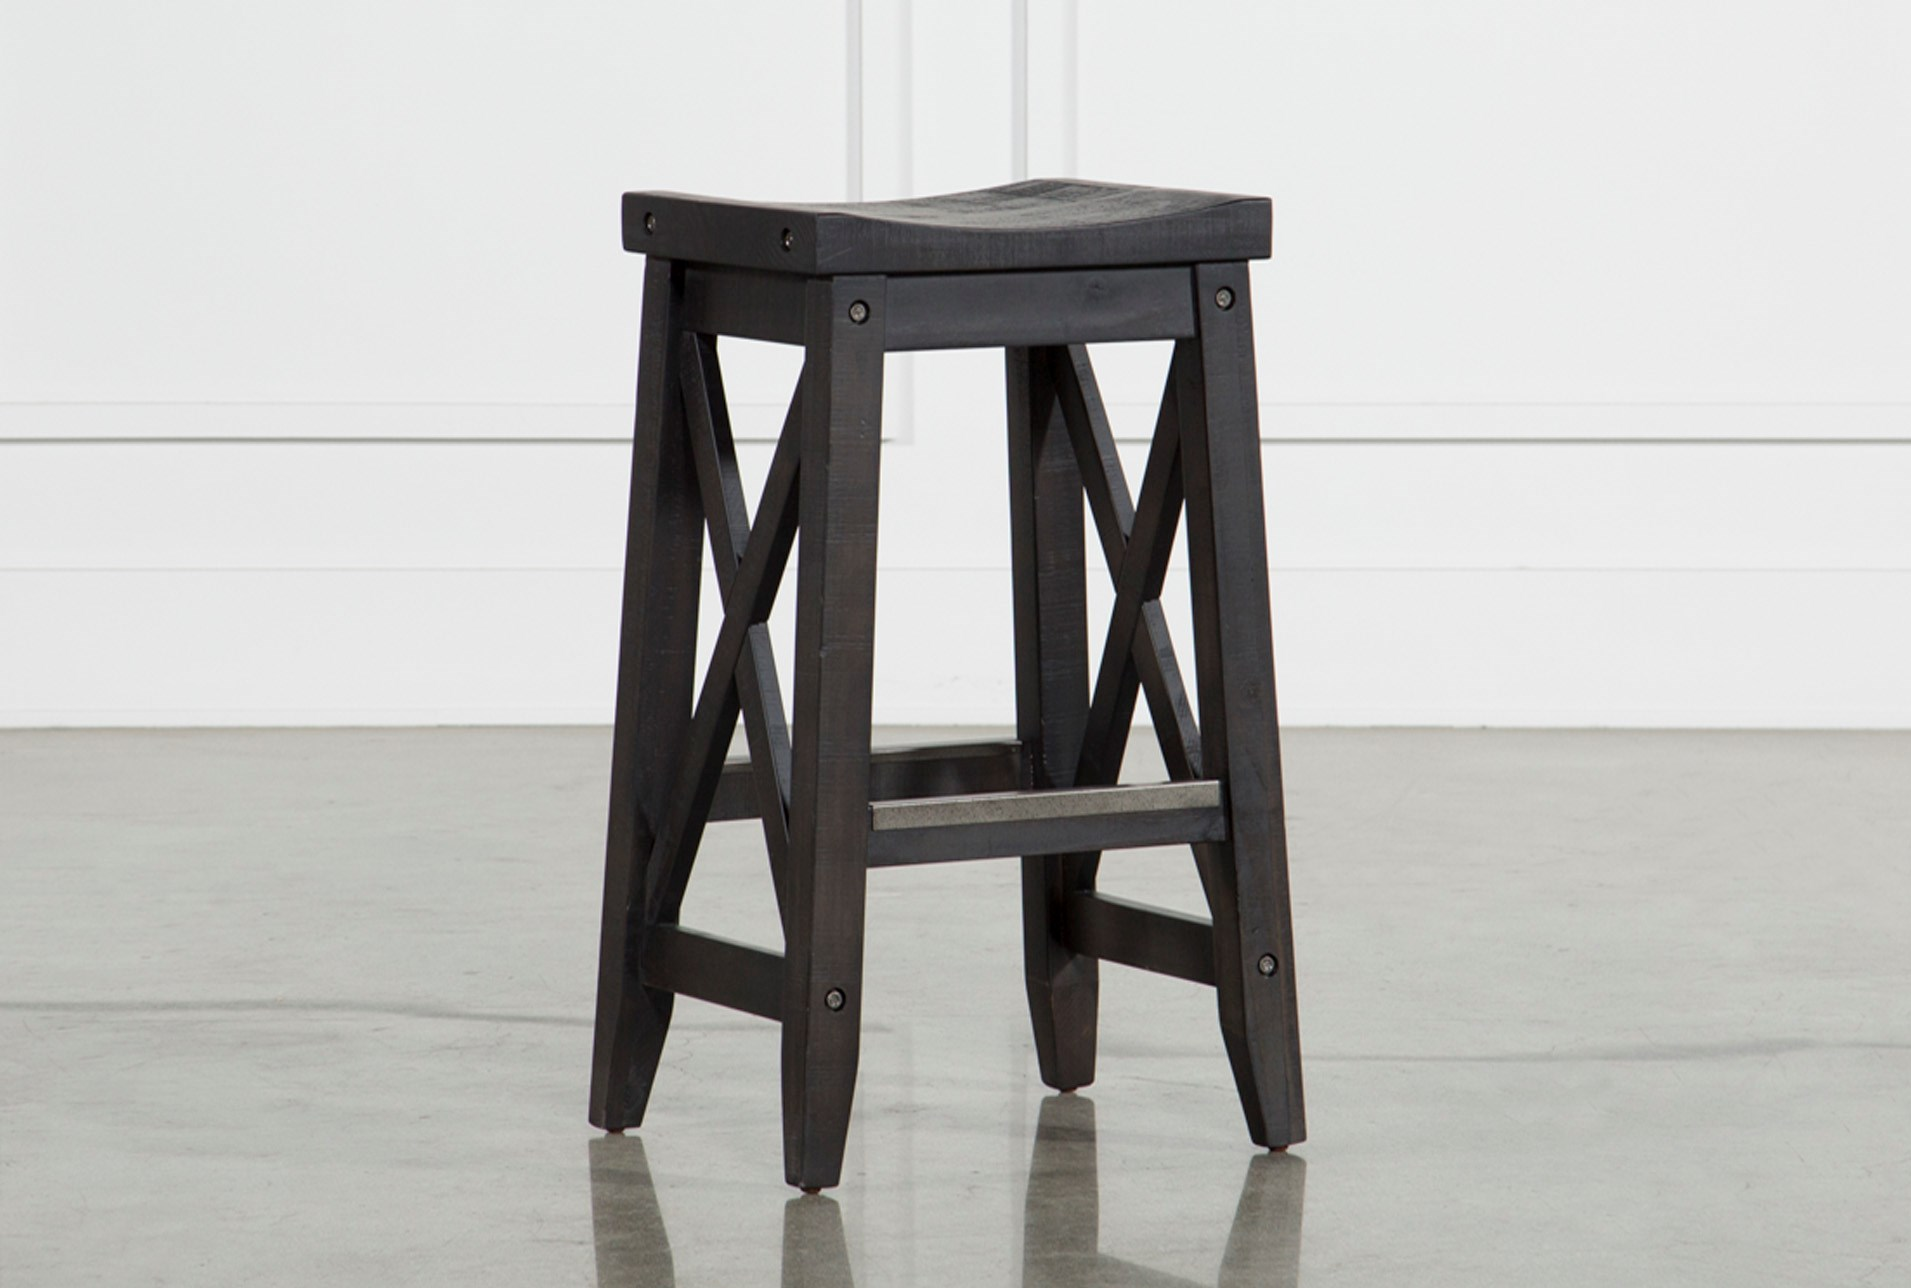 Jaxon Wood Barstool Qty 1 Has Been Successfully Added To Your Cart